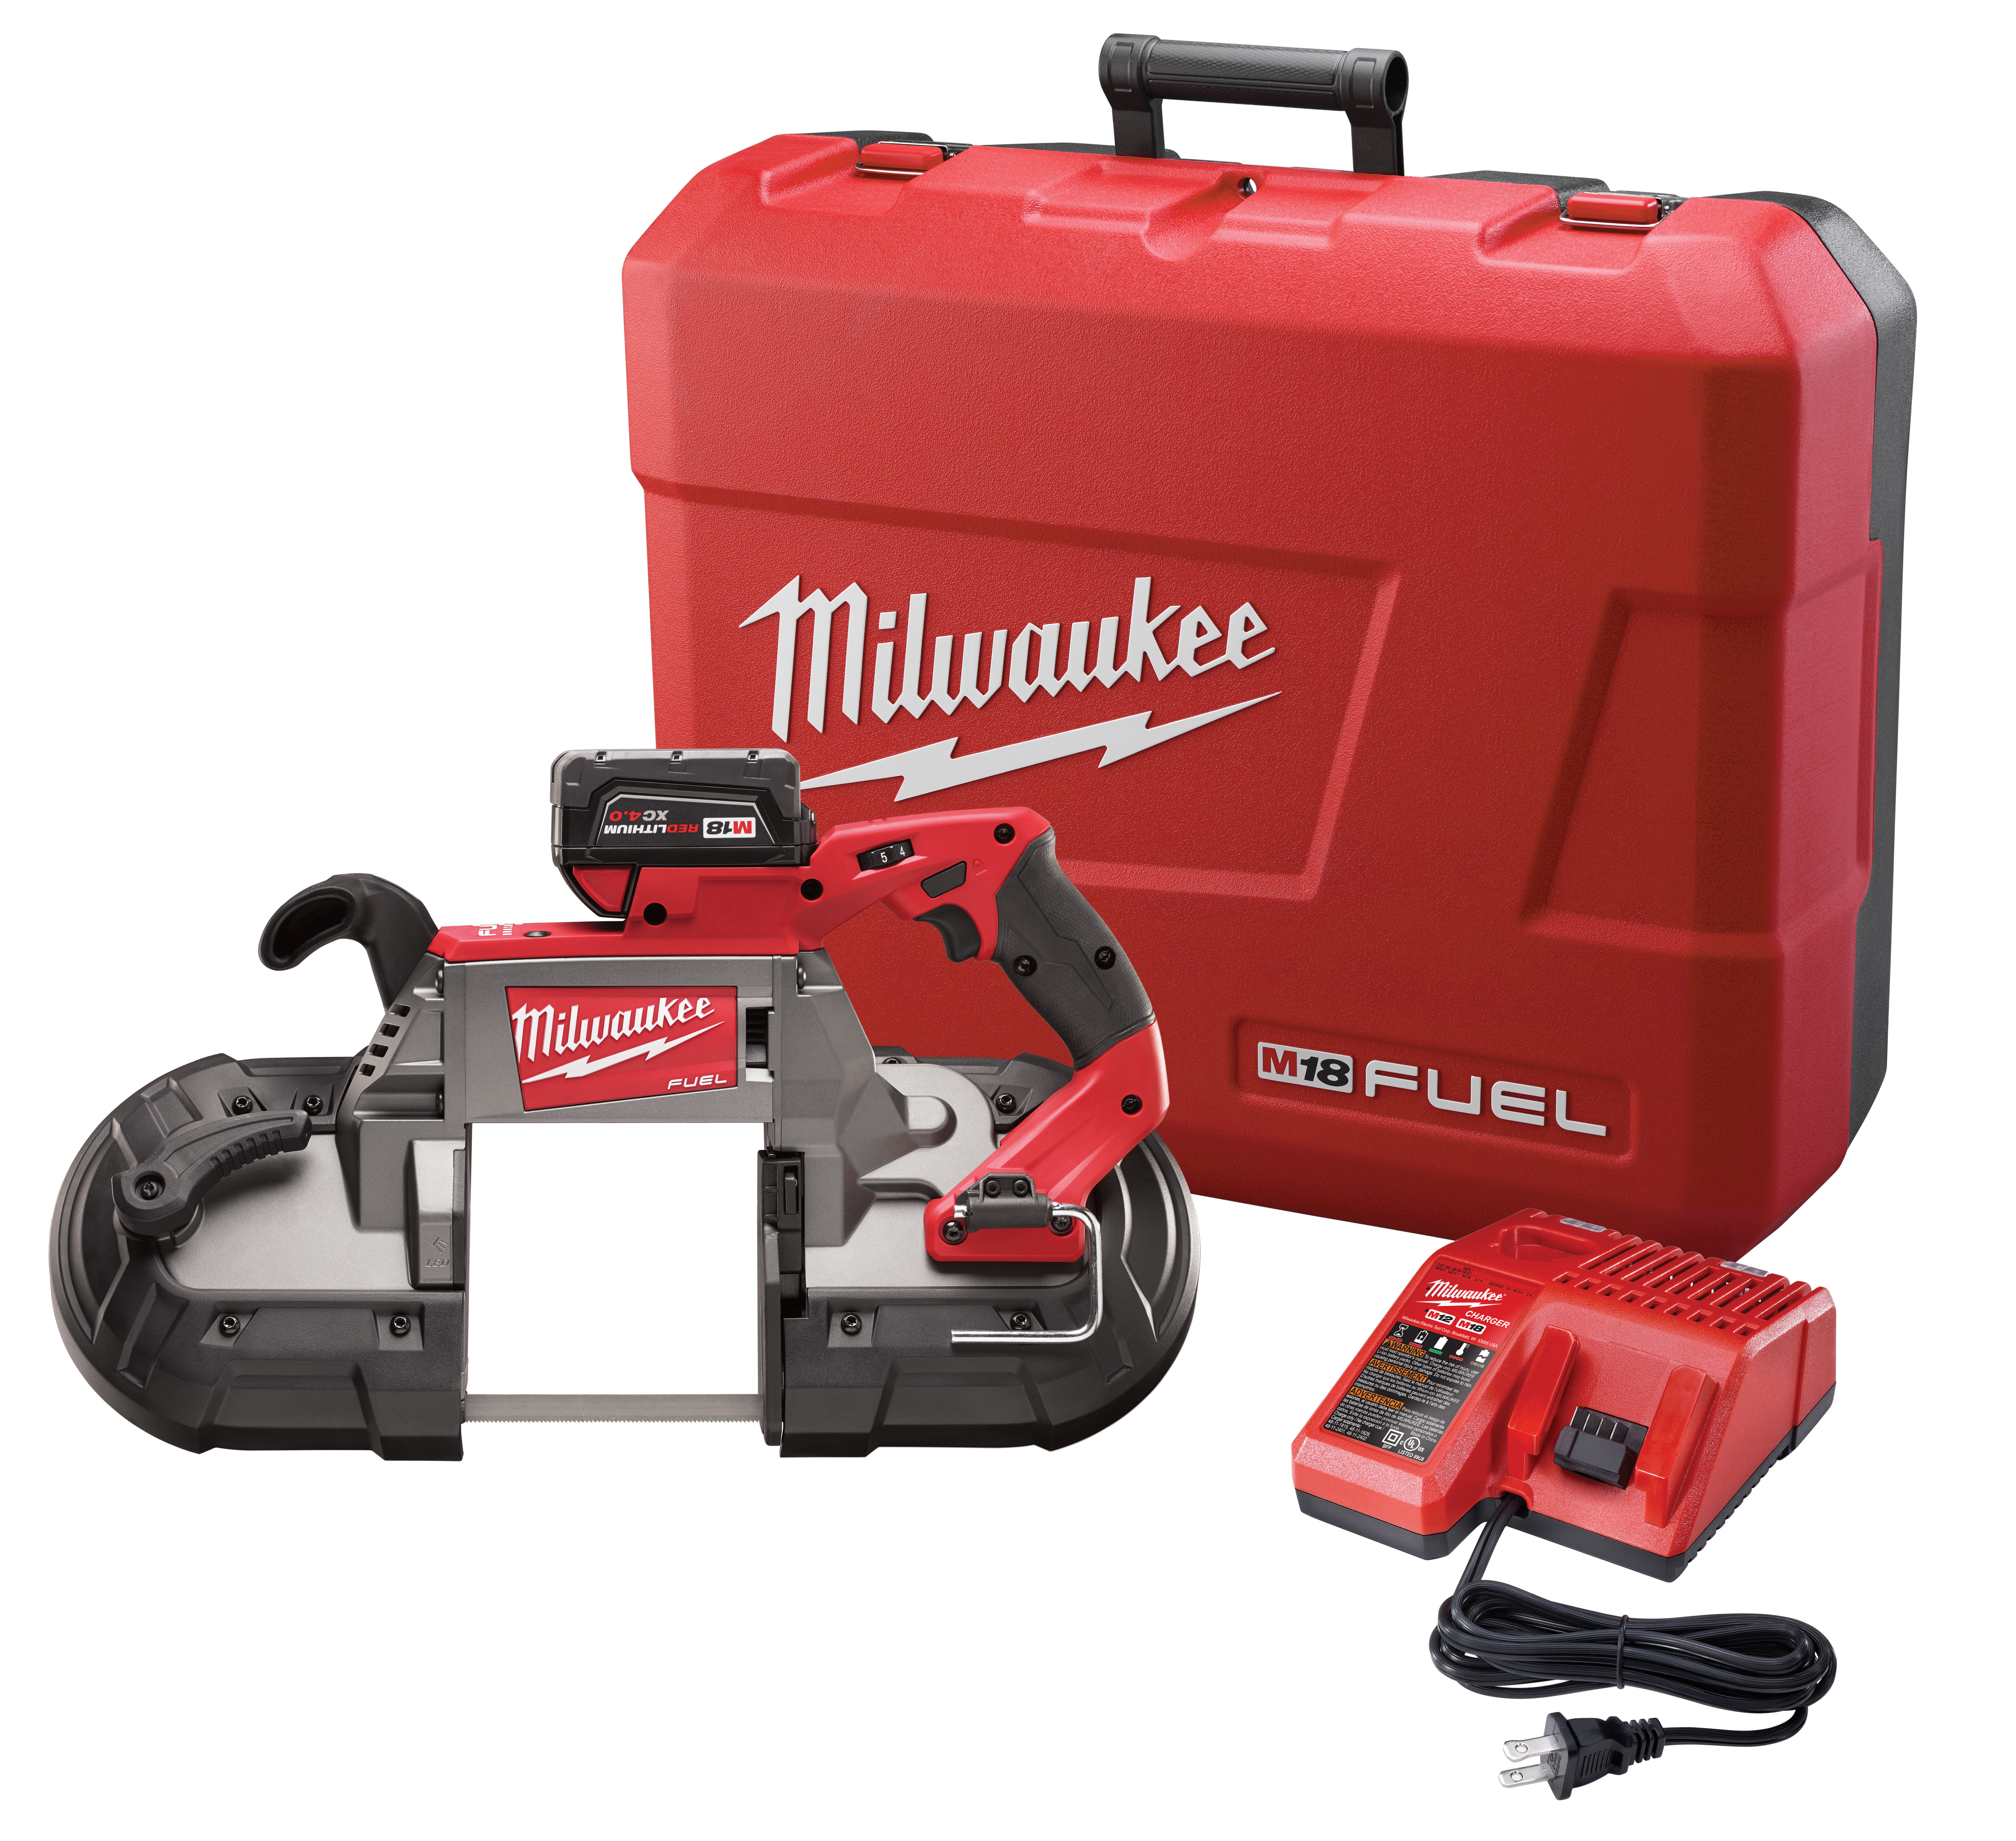 Milwaukee® M18 FUEL™ 2729-21 Cordless Band Saw Kit, 5 in Cutting, 44.875 in L x 0.5 in W x 0.02 in THK Blade, 18 VDC, 5 Ah Lithium-Ion Battery